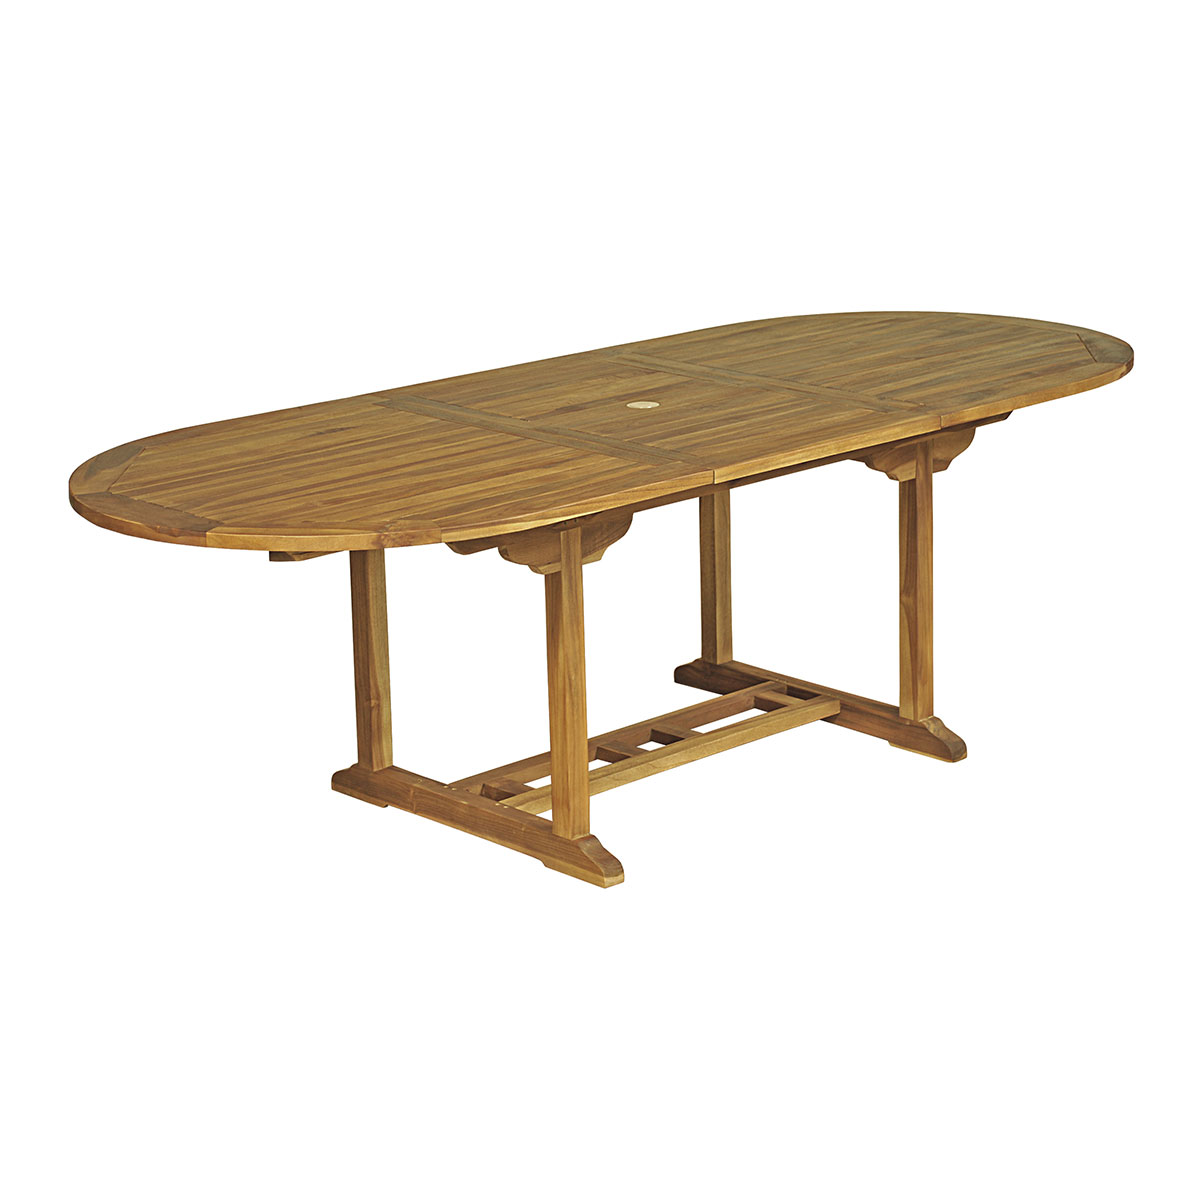 Table ovale Baya L 180/240 - 100 - Teck Huilé